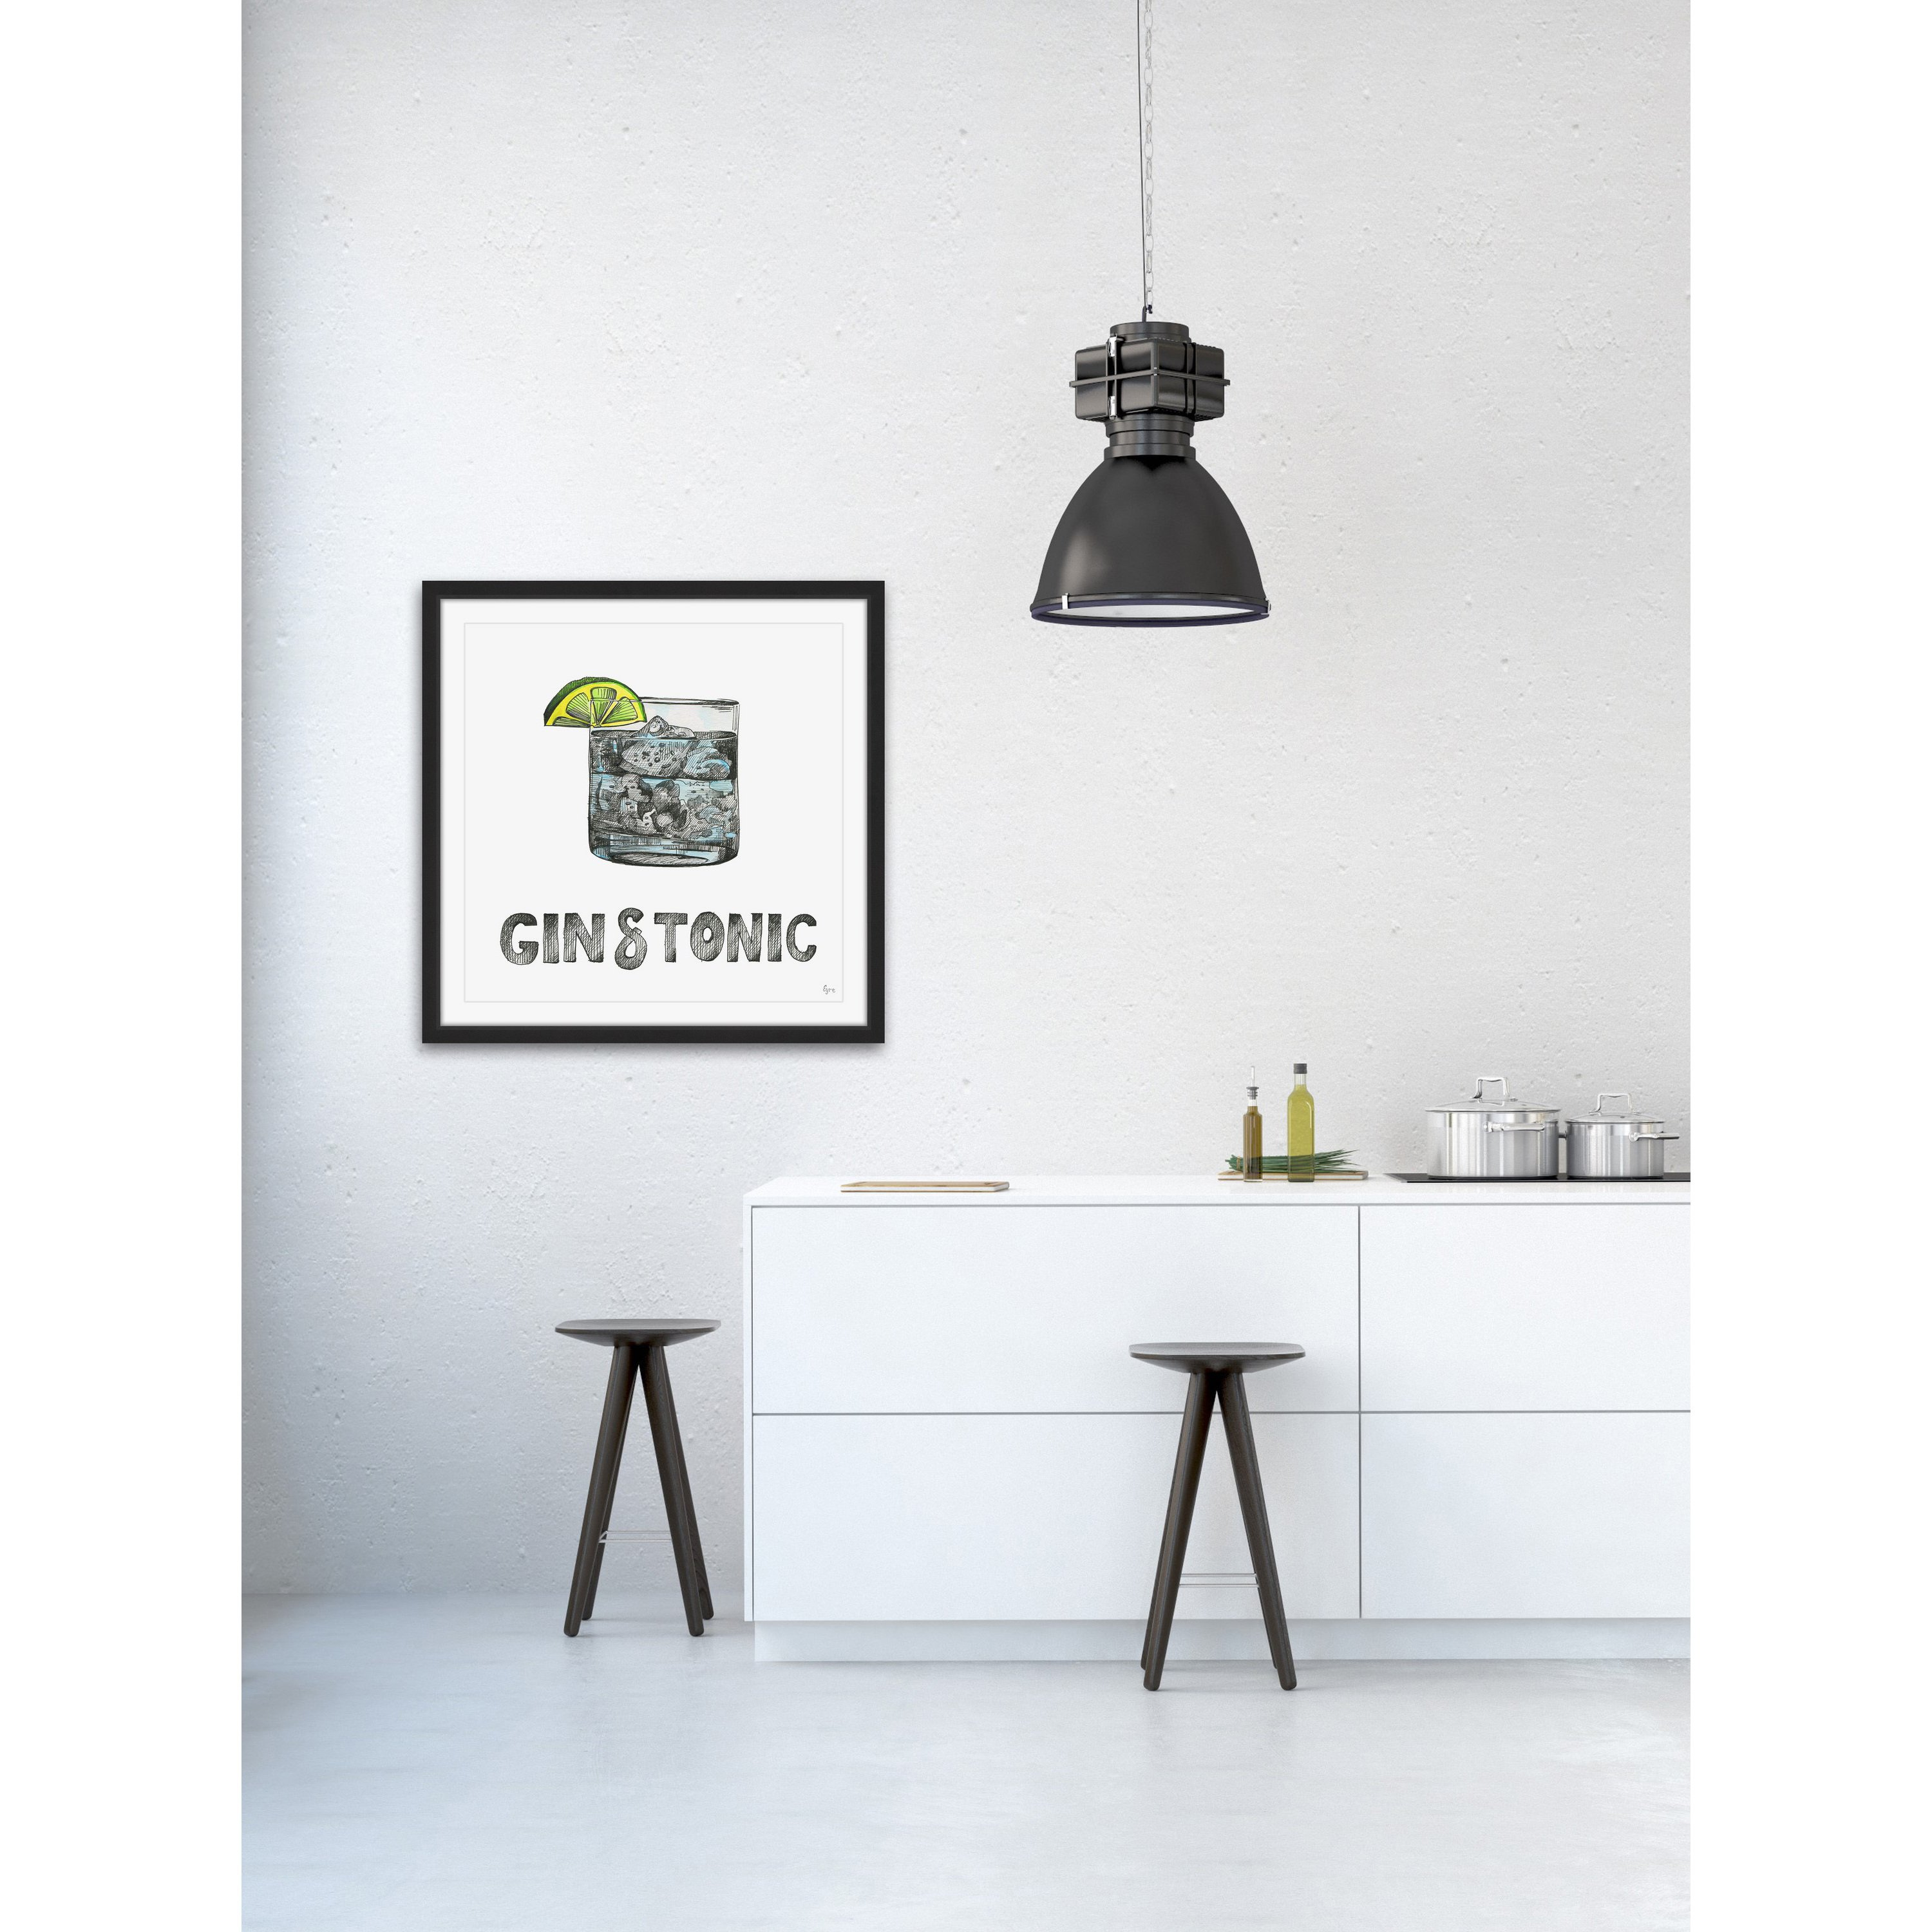 gin tonic framed painting print free shipping today uttermost cube accent table small round tablecloth mosaic dining and chairs patio console with wicker drawers black lamp end